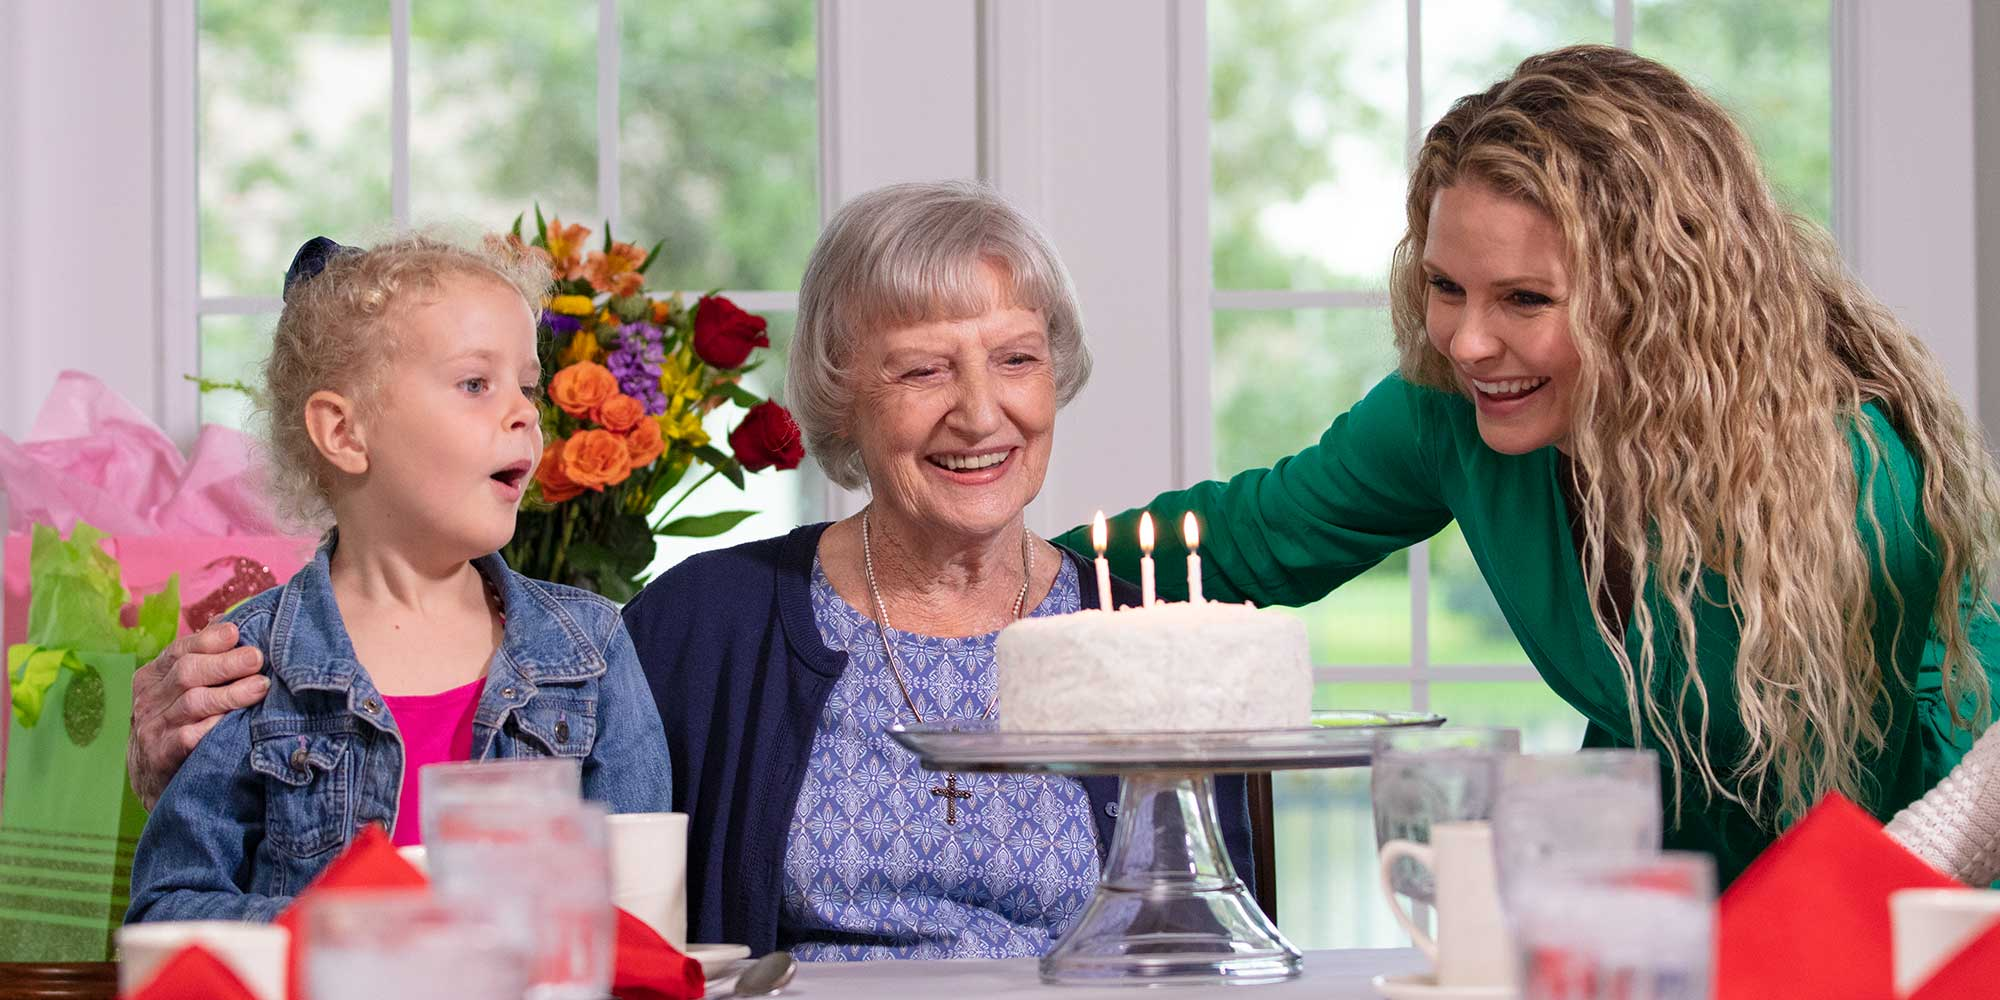 Senior woman celebrating her birthday with her daughter and granddaughter